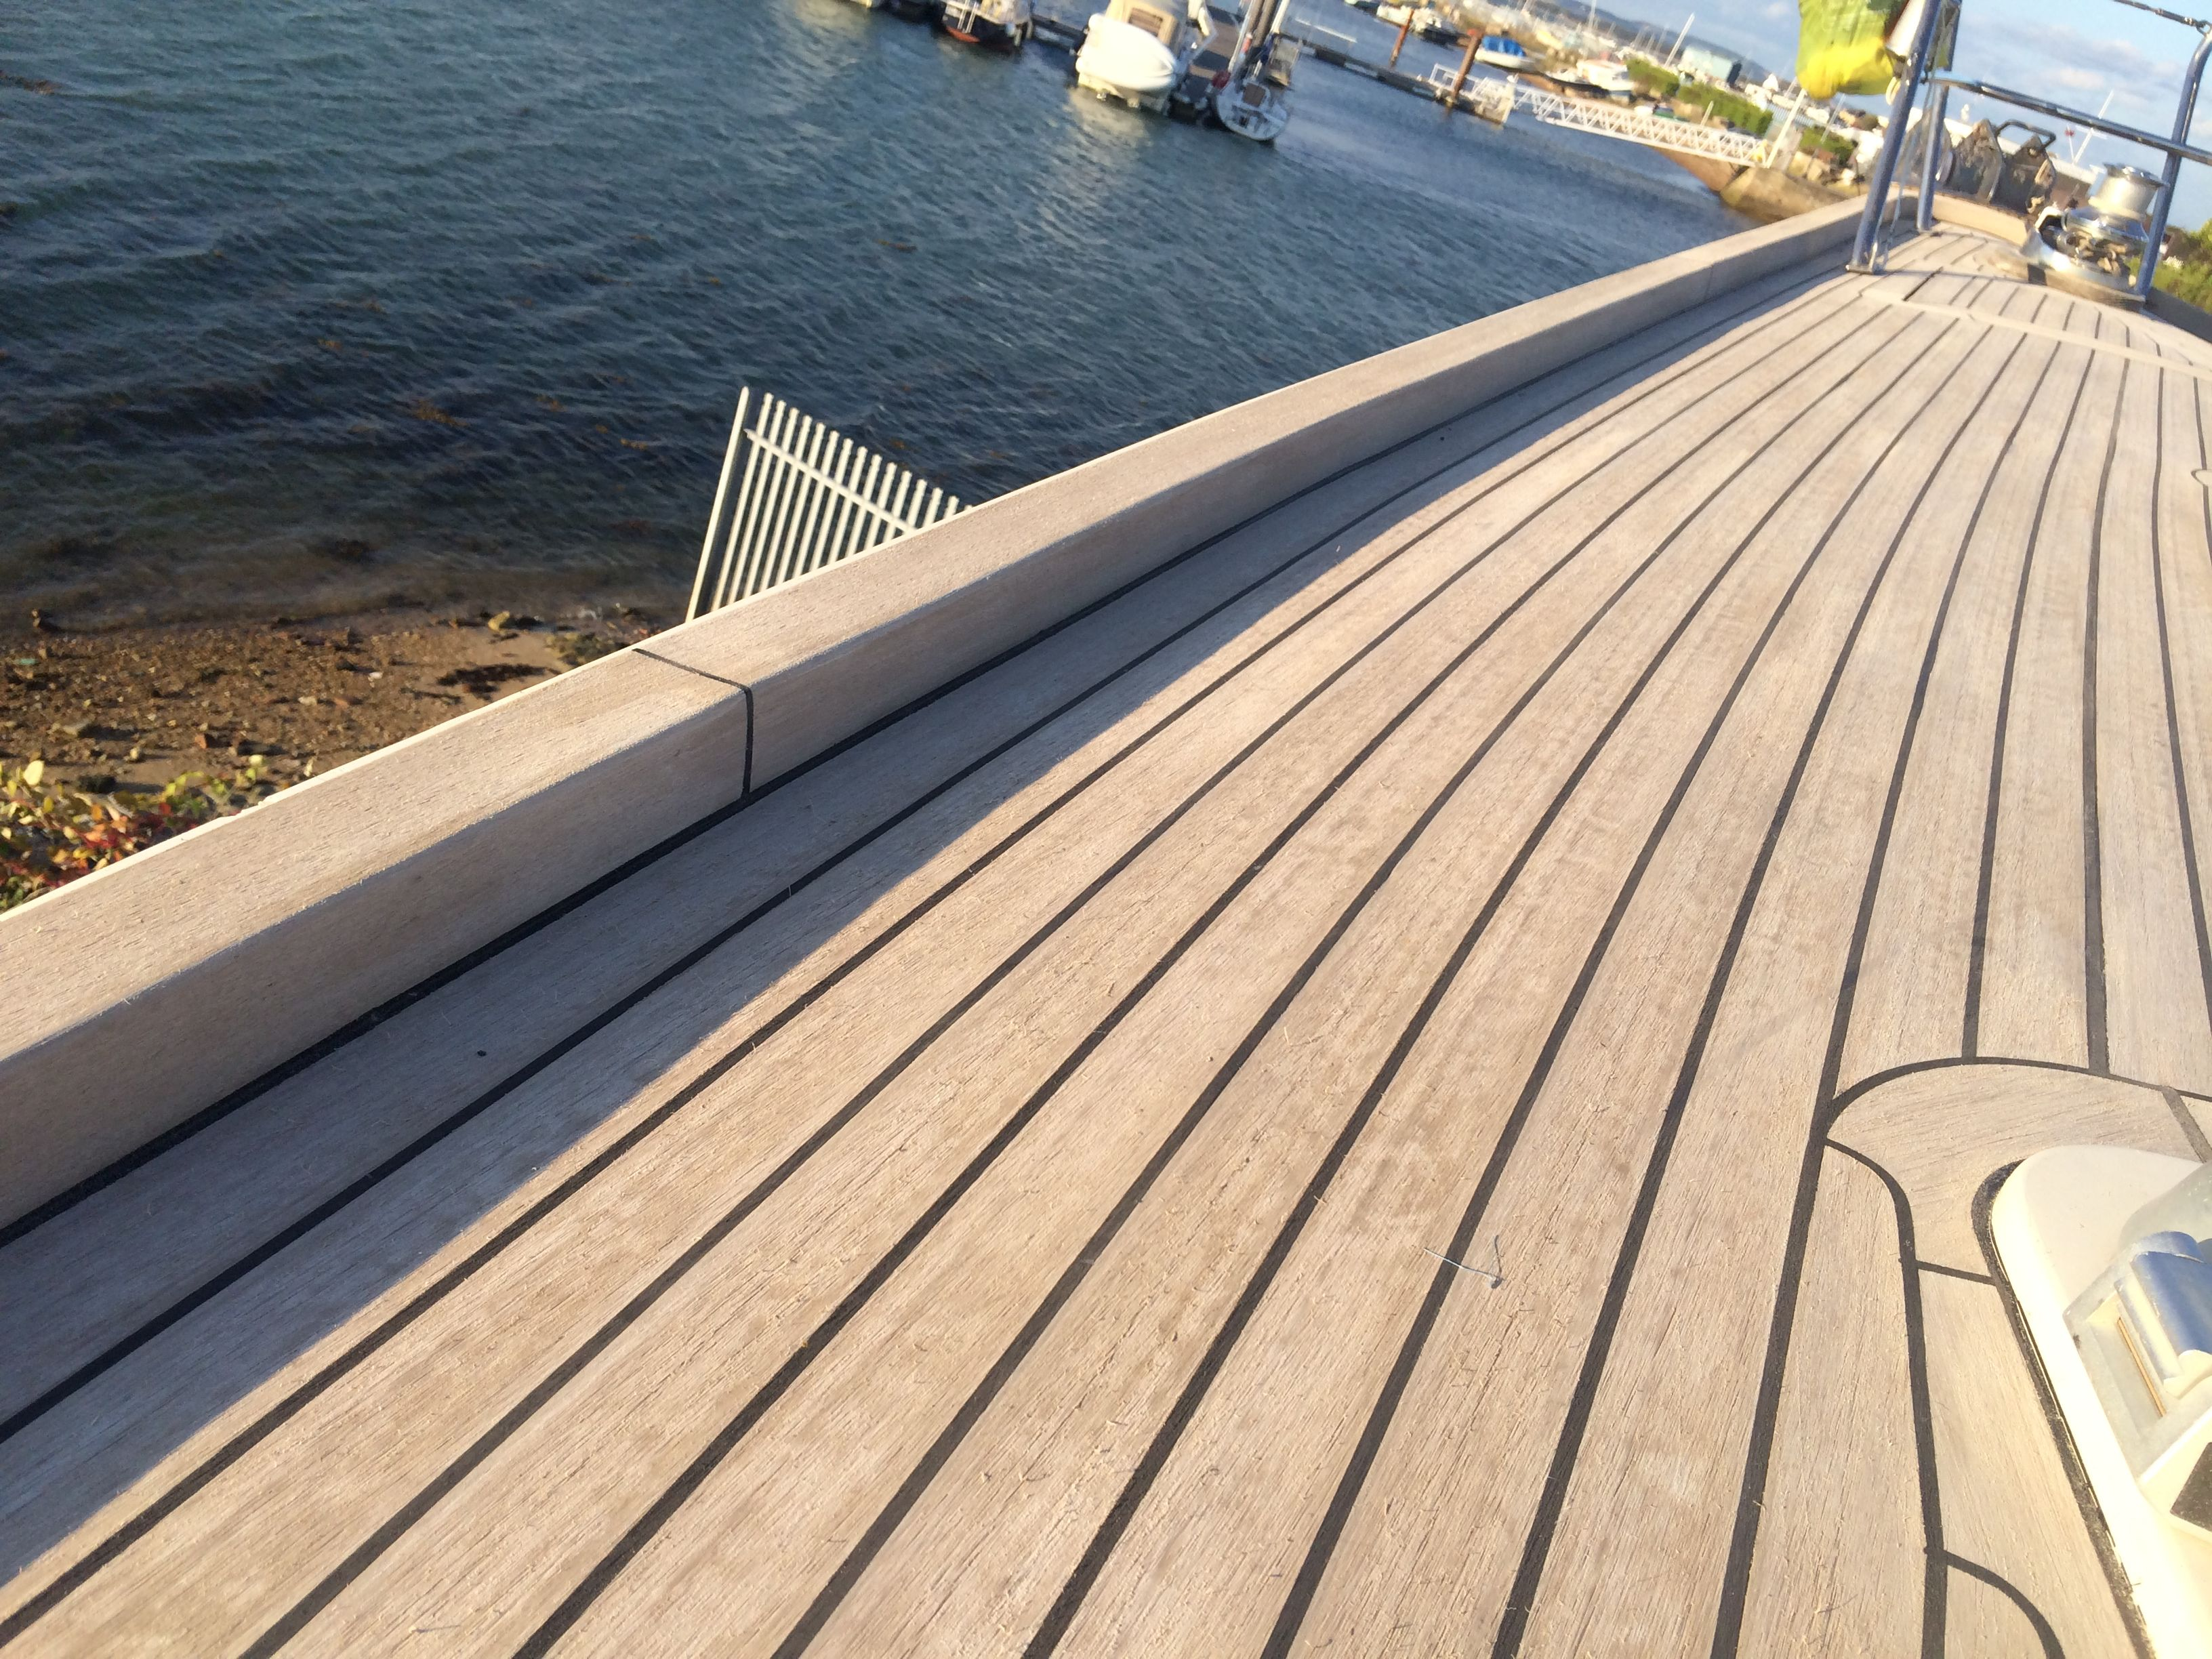 Vinyl Floor Covering For Pontoon Boats Best Synthetic Deck Material